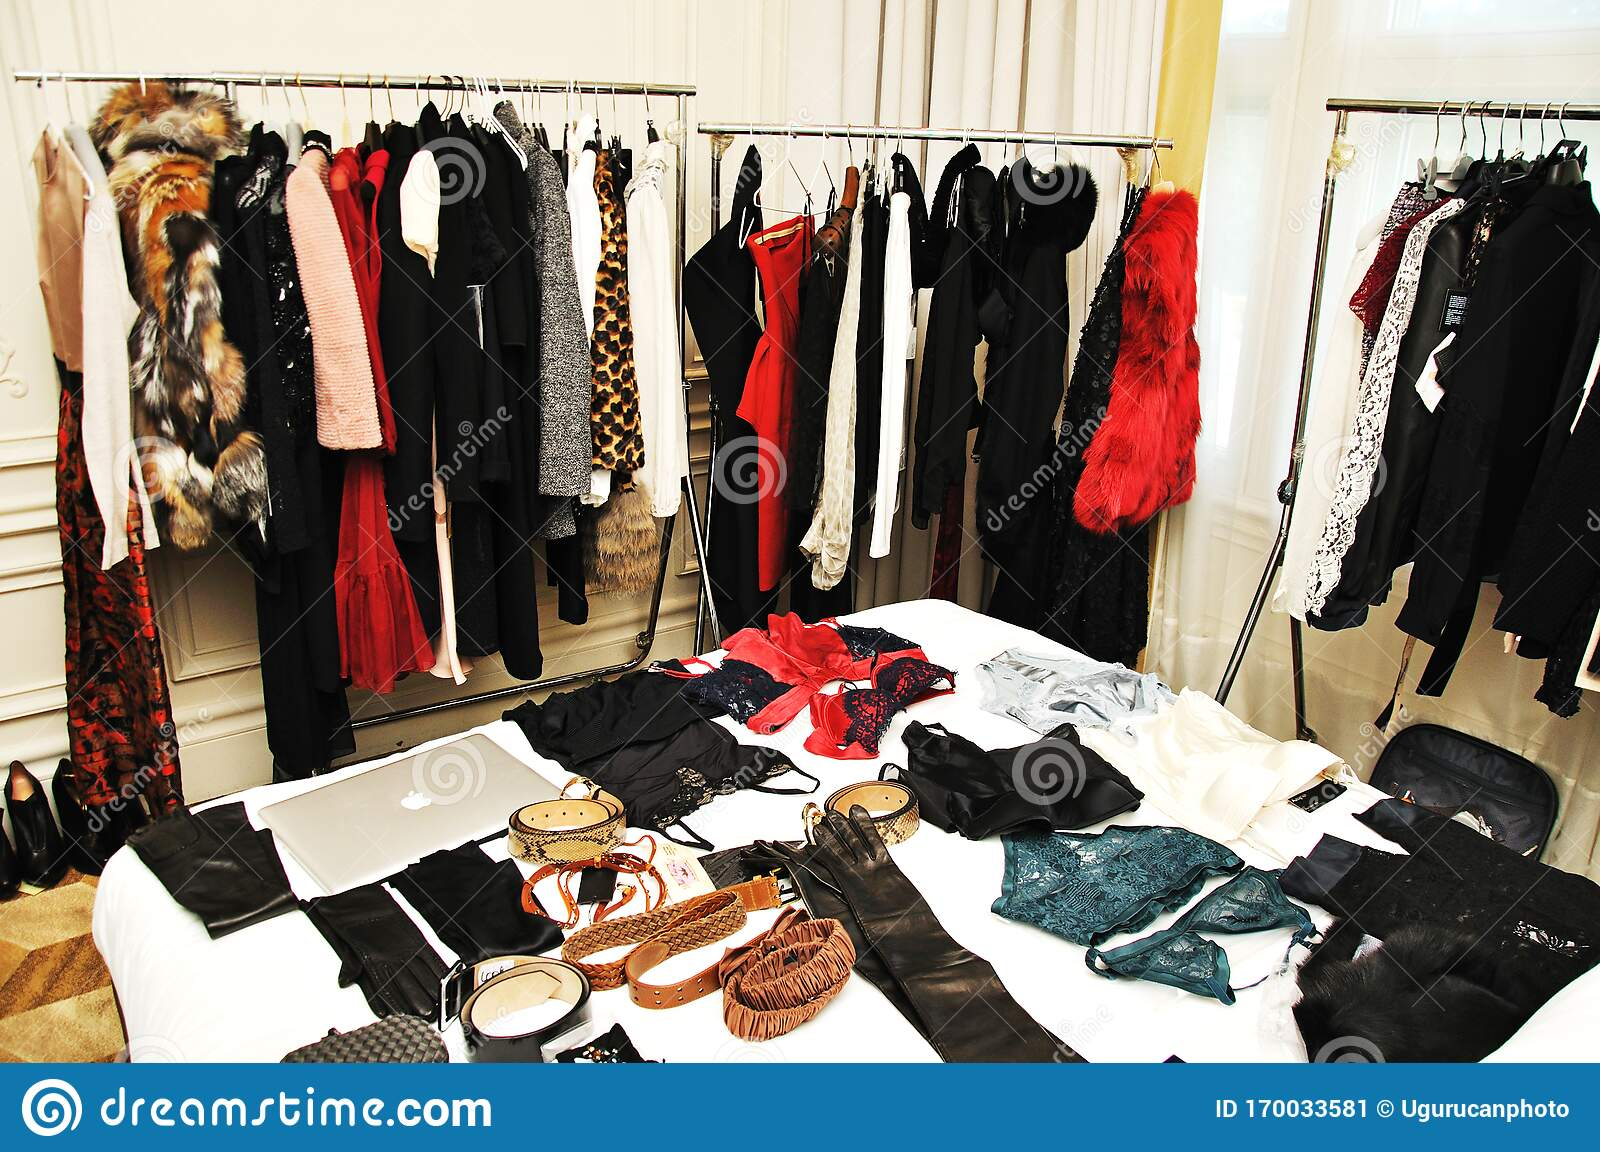 https www dreamstime com dresses hanging clothes spread over bed dressing room scattered version bedroom covered jewelery accessories image170033581